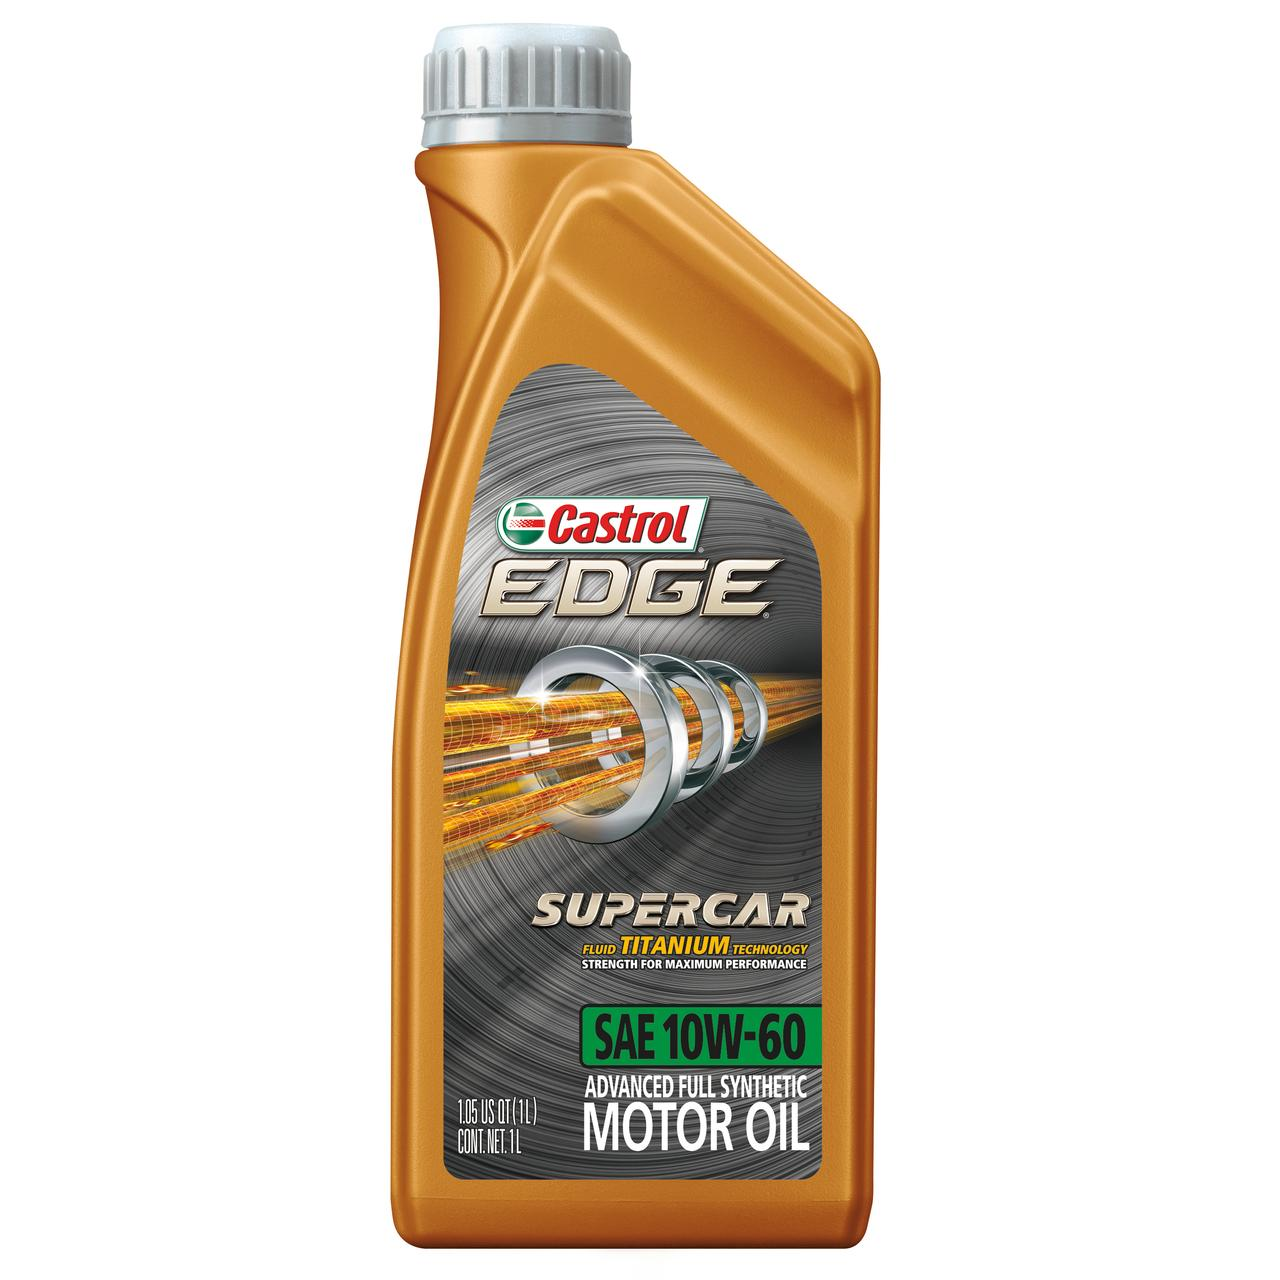 Castrol EDGE SUPERCAR 10W-60 Advanced Full Synthetic Motor Oil, 1 L